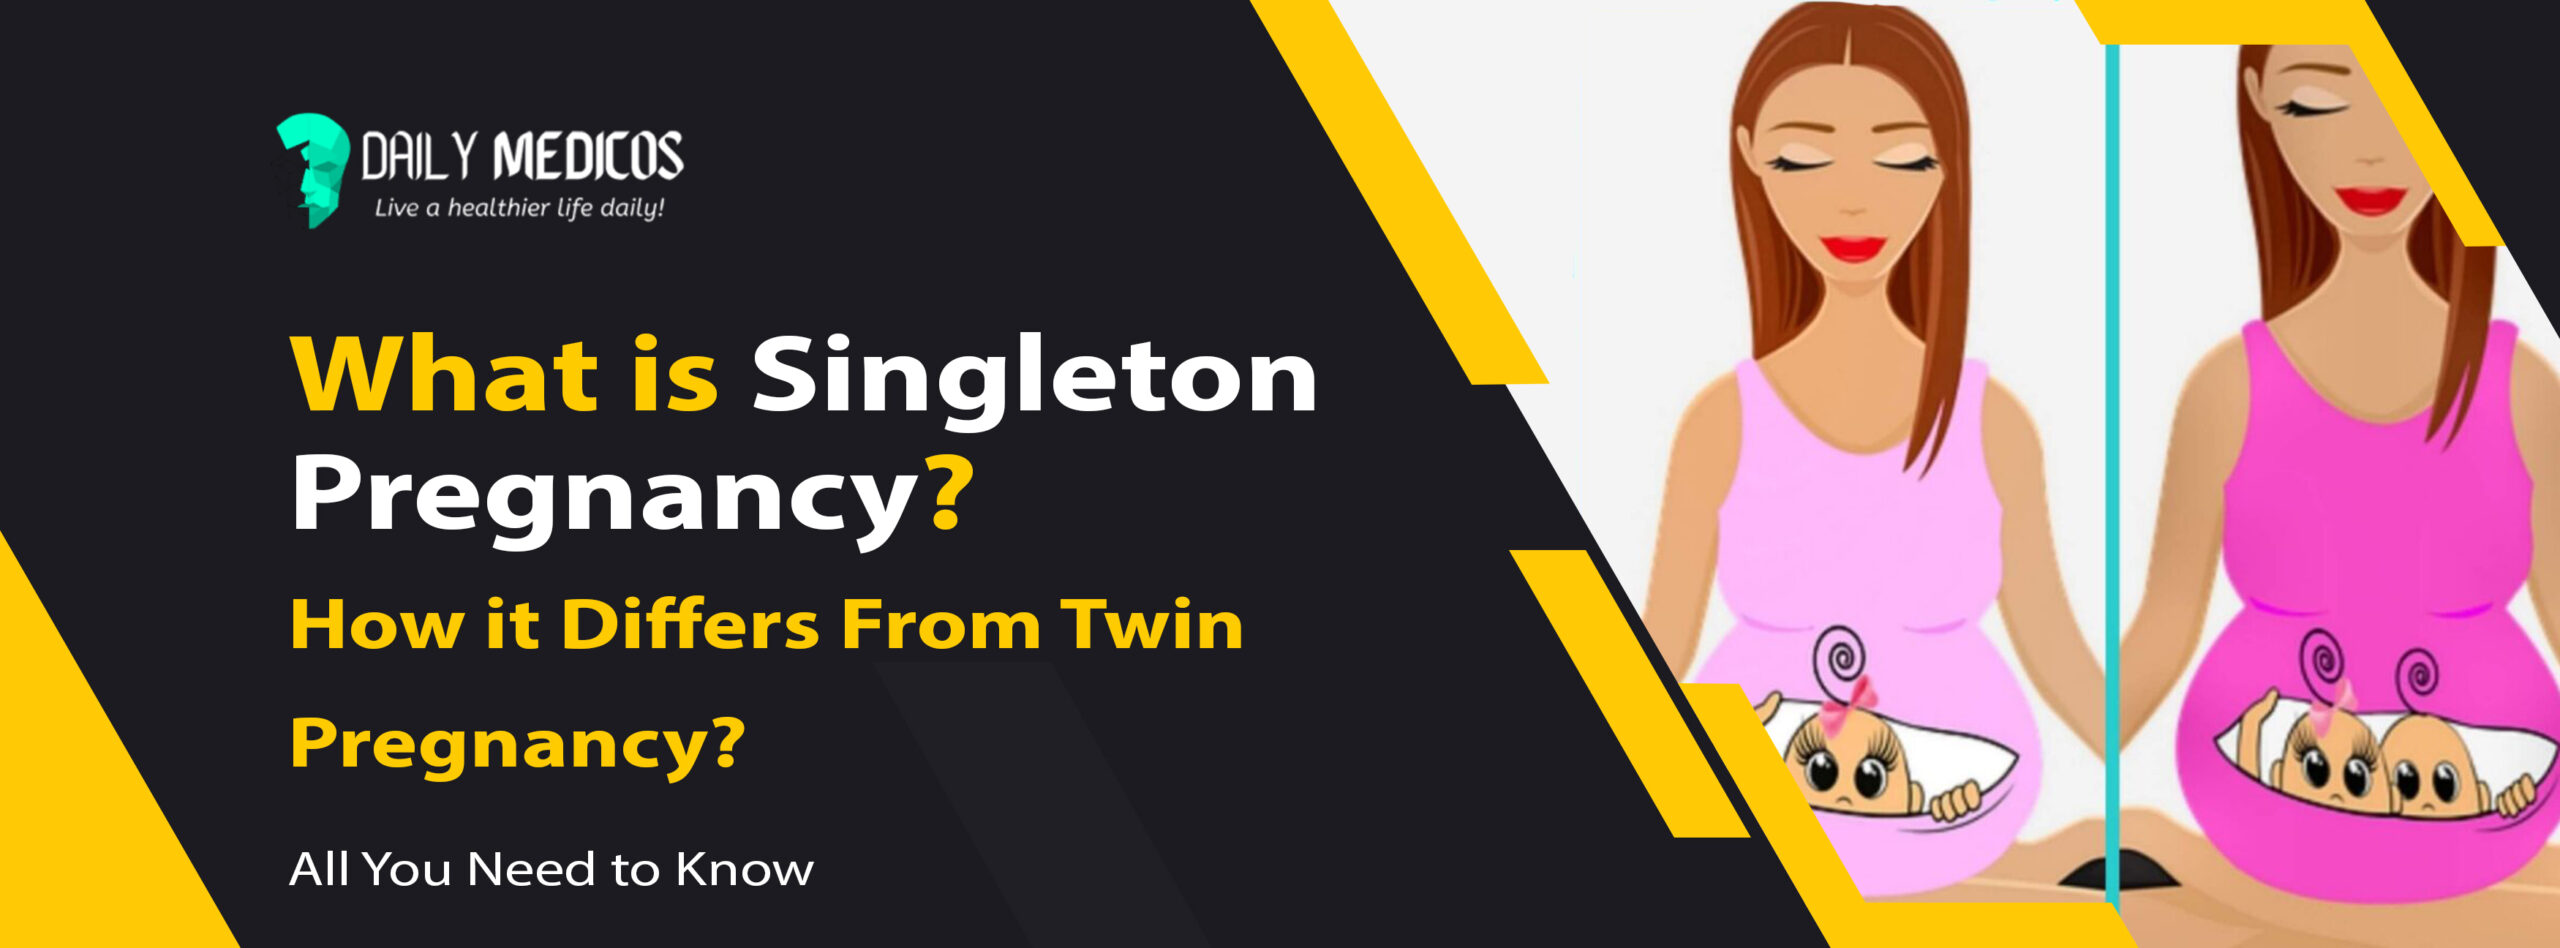 What is Singleton Pregnancy and How it Differs From Twin Pregnancy? [All You Need to Know] 1 - Daily Medicos